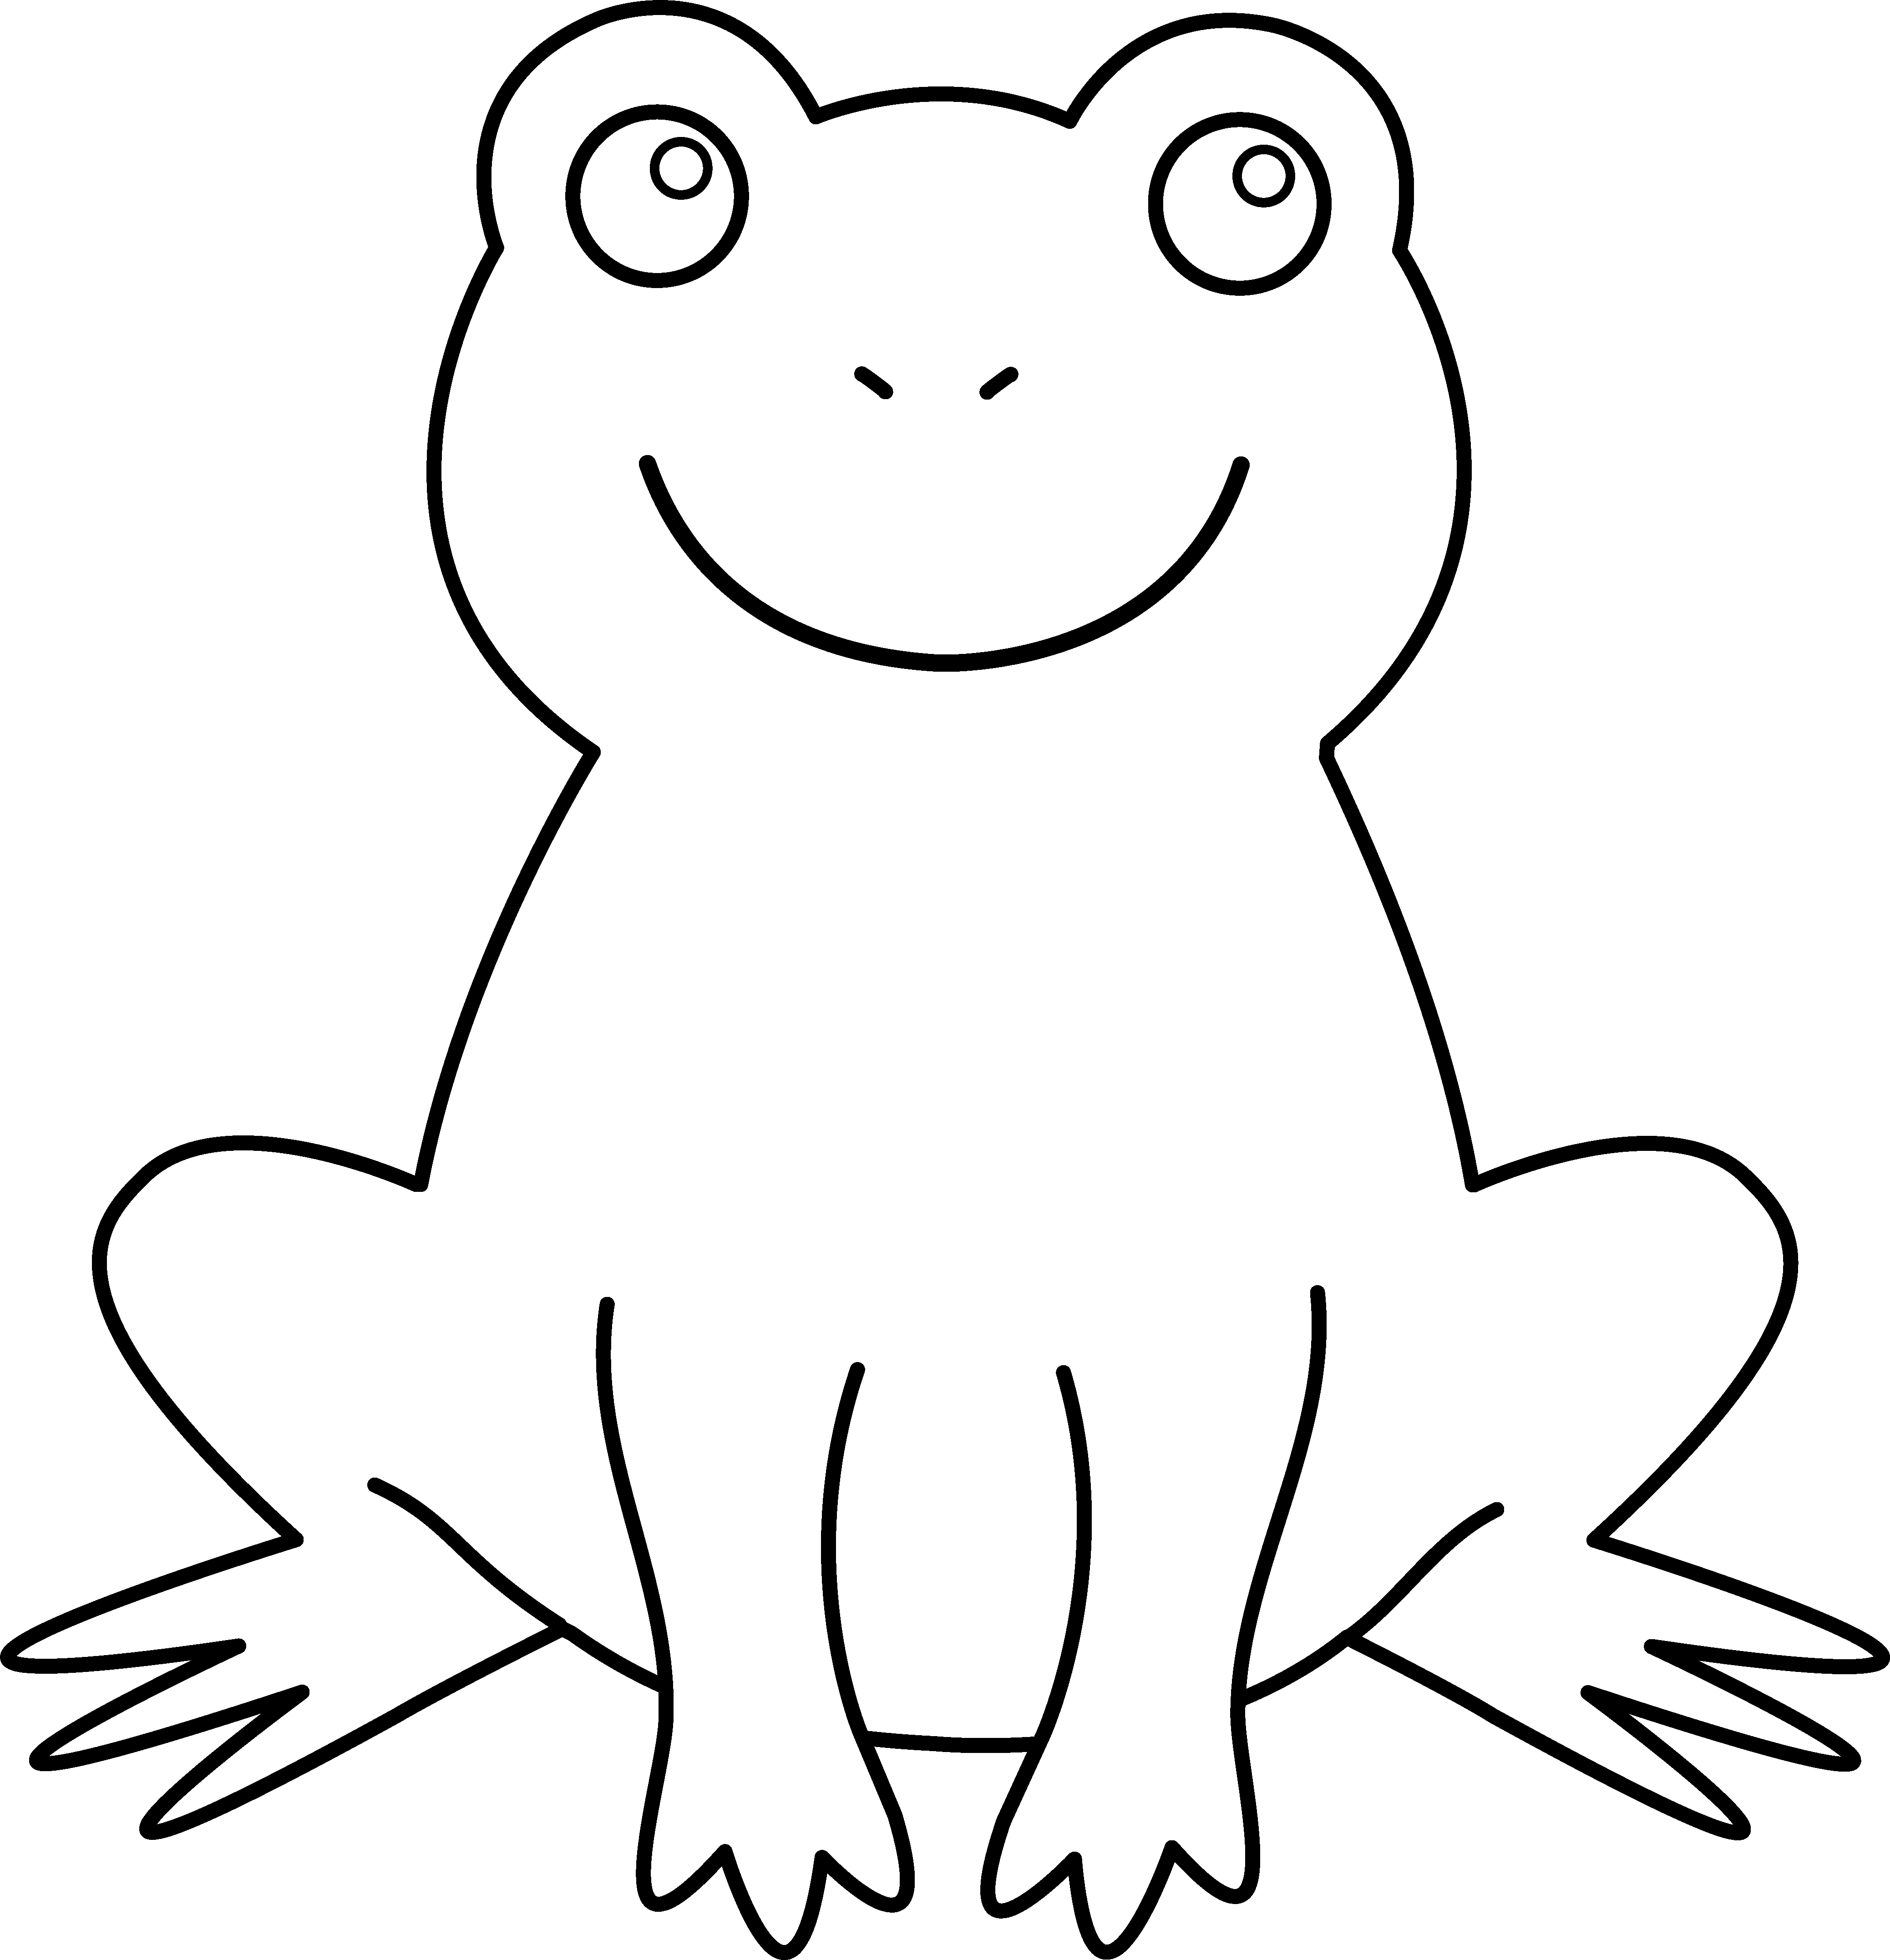 Frog with crown black white clipart banner library download Black and White Frog | for Newsletter | Pinterest | Frogs, Cricut ... banner library download